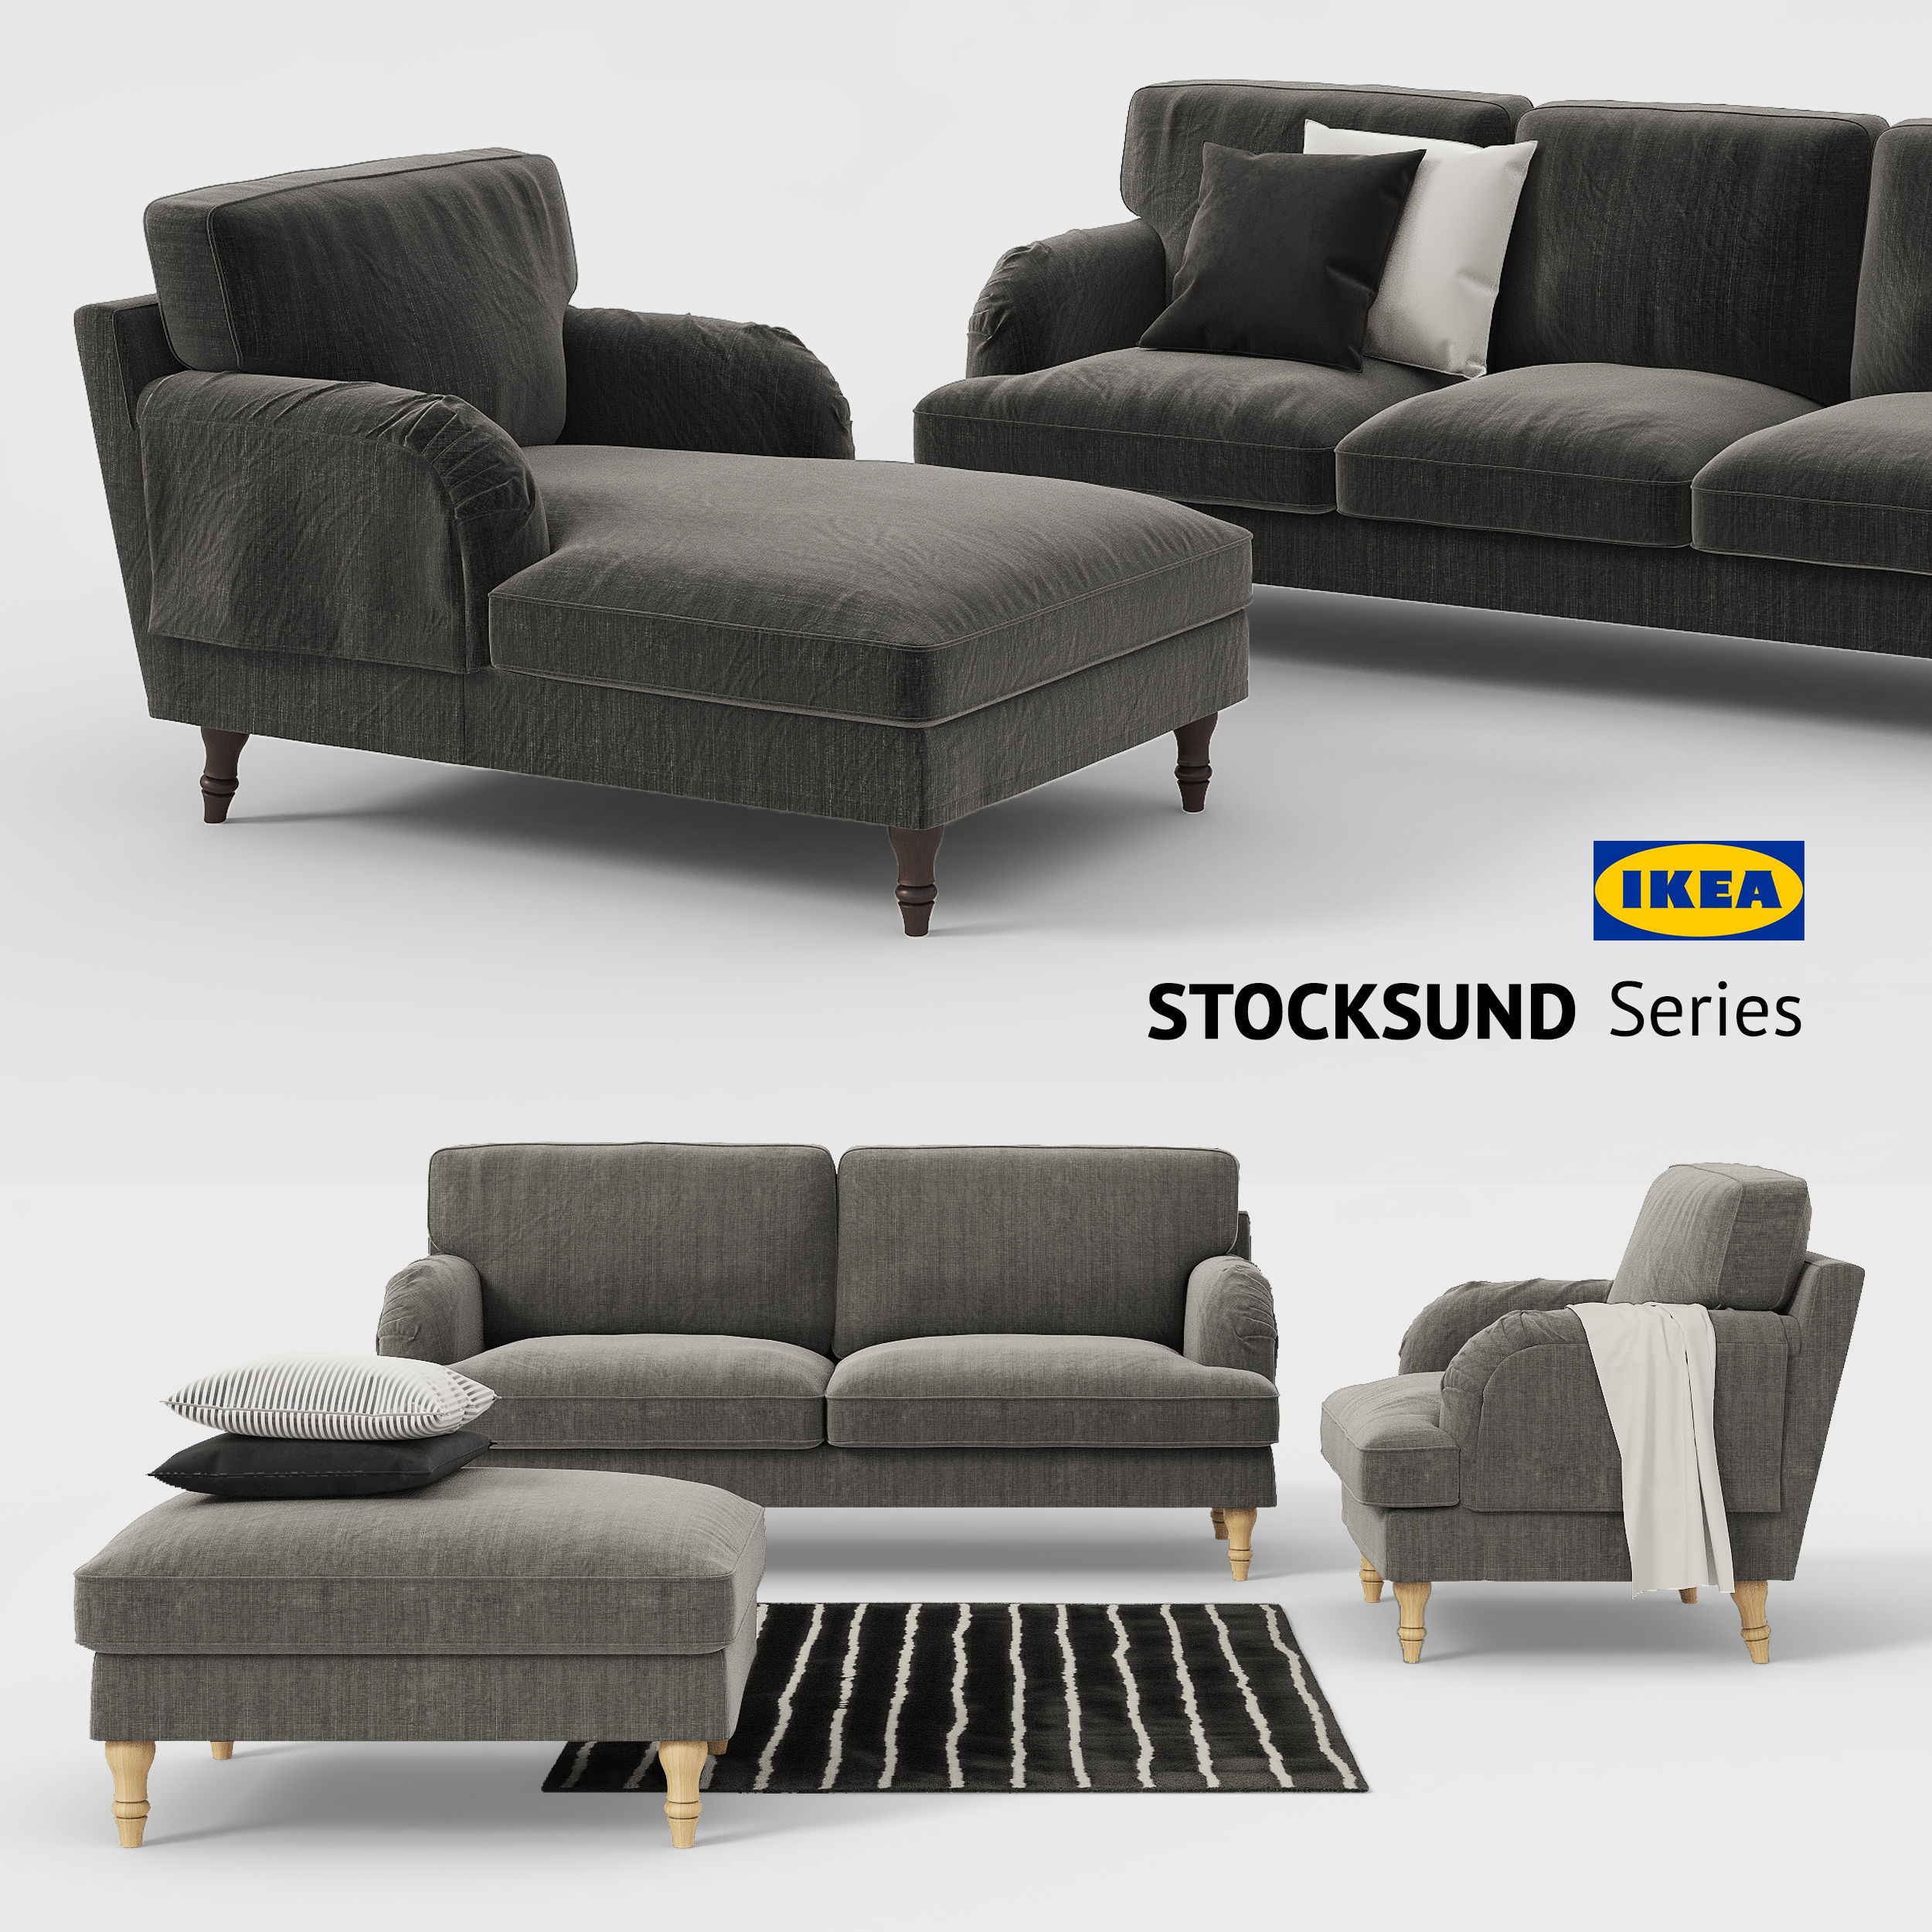 Couch Ikea Ikea Stocksund Sofa Chair Ottoman Chaise Sofa Cover 3d Model